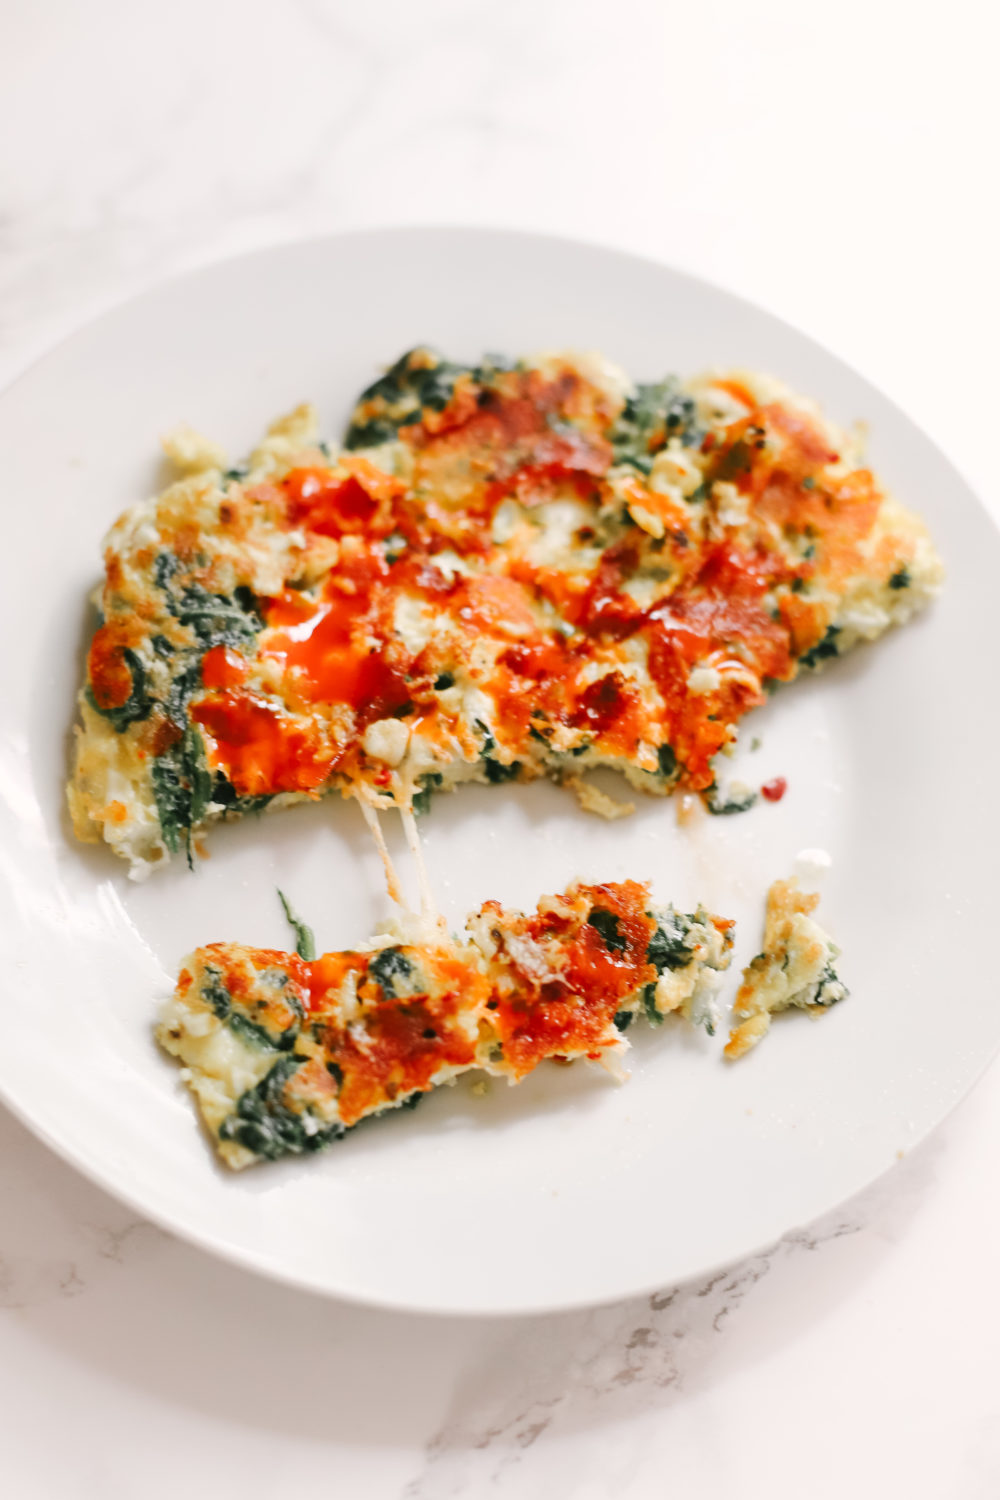 An egg frittata naturally low in carbs and keto friendly. A quick breakfast for every morning or after intermittent fasting, as it will aid in weight loss. Ketogenic   Fried Egg   Omelette   Spinach and Eggs   Spinach and Cheese   Breakfast   Brunch   Gluten-Free   Low carbs   Atkins   Easy   Weight Loss   Burn Fat   Healthy Recipes   Veggies  